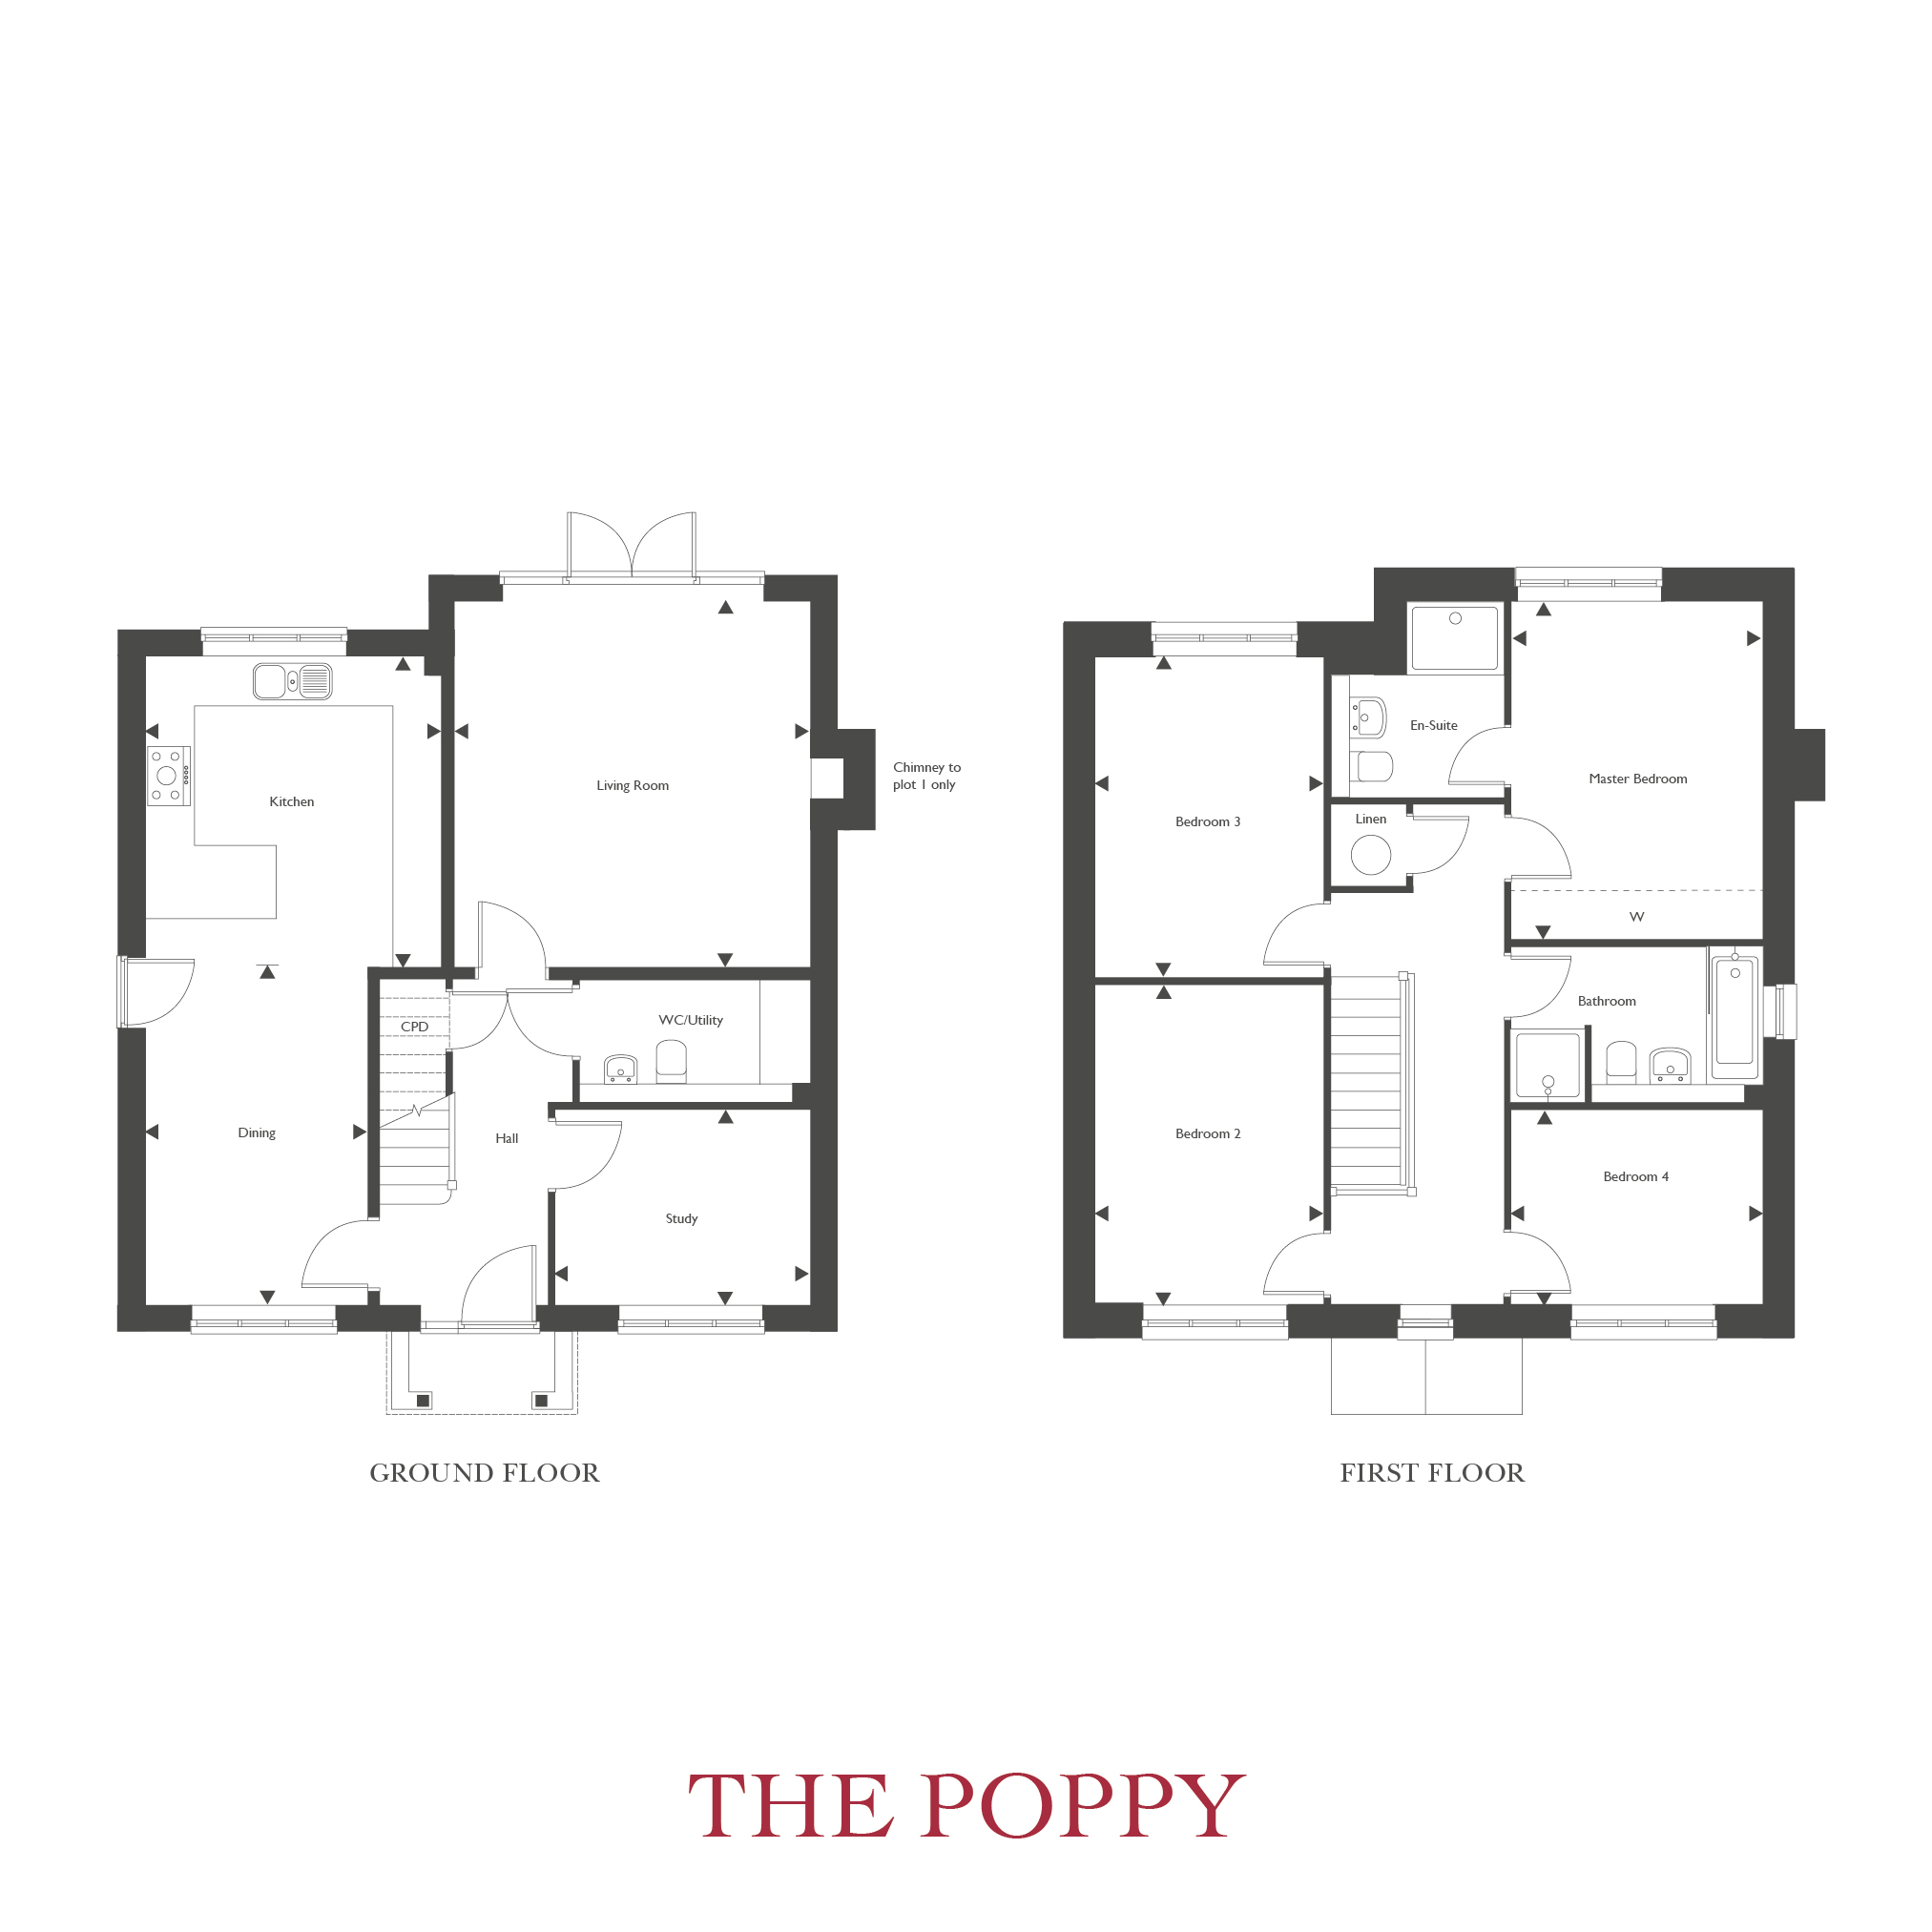 Plot 4 – The Poppy Floor plan